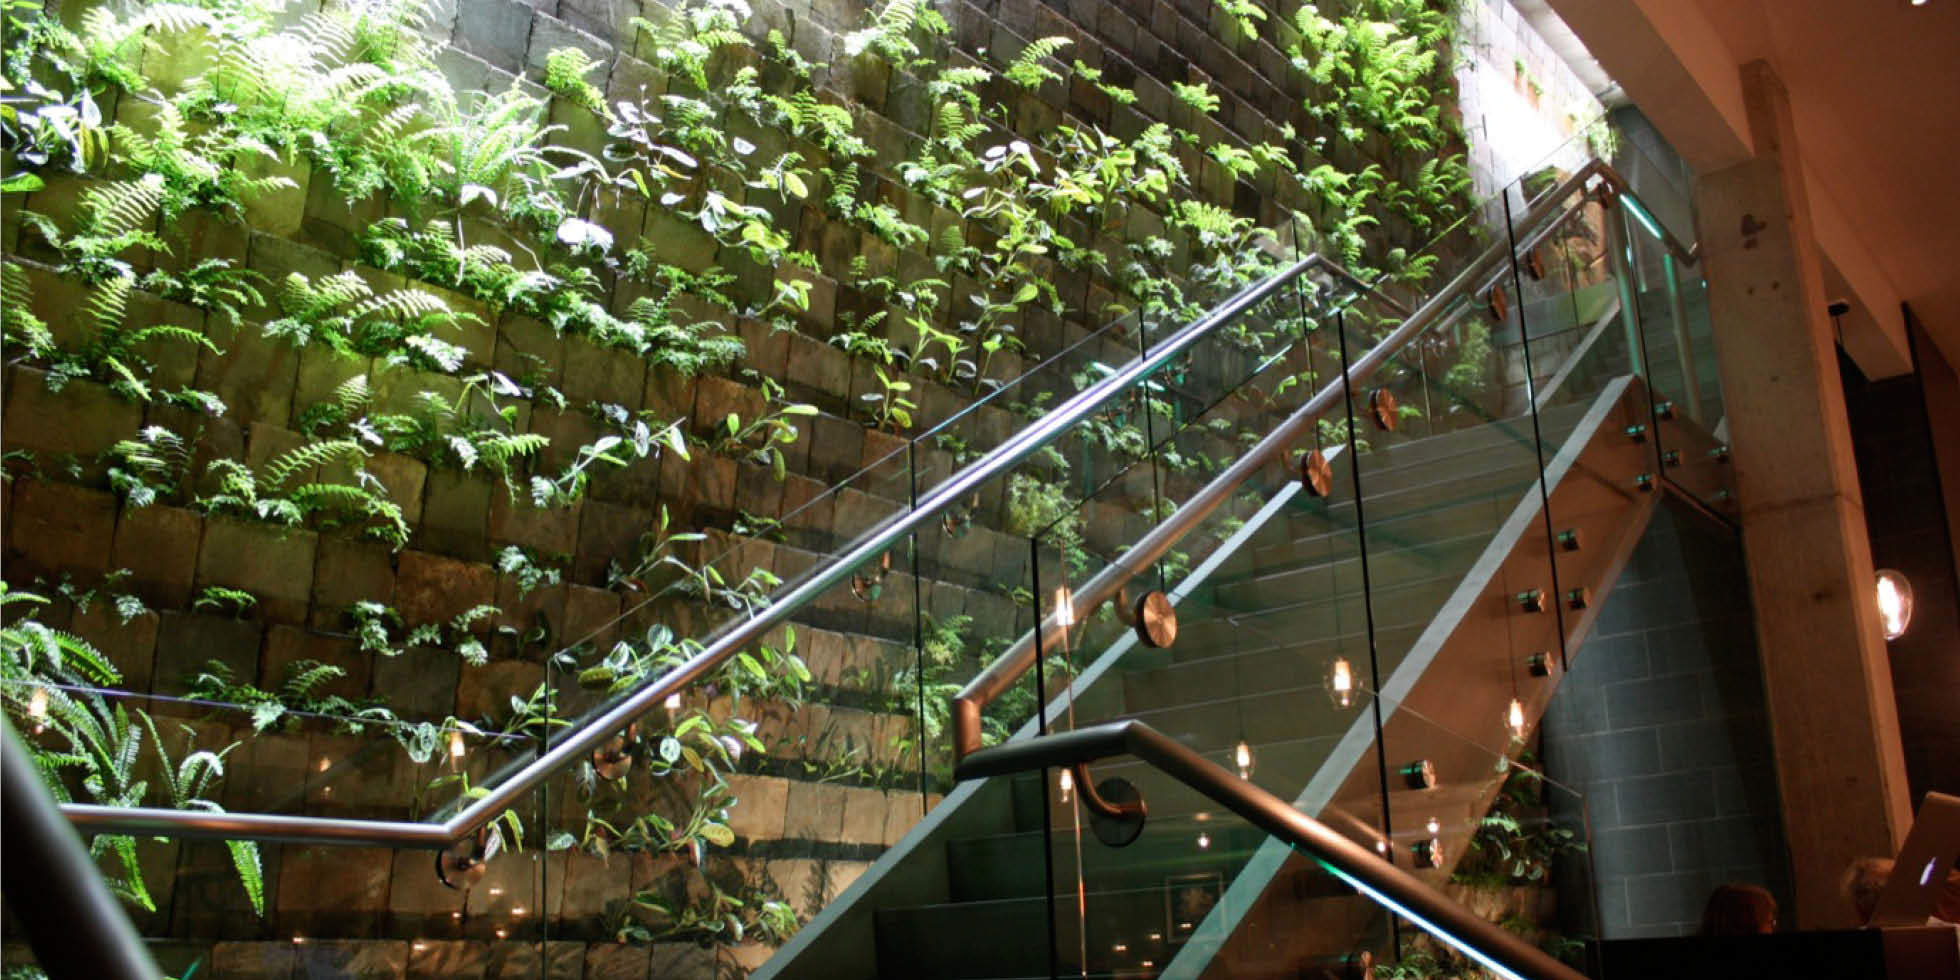 The Moss Room Restaurant Living Wall by Habitat Horticulture - View 1